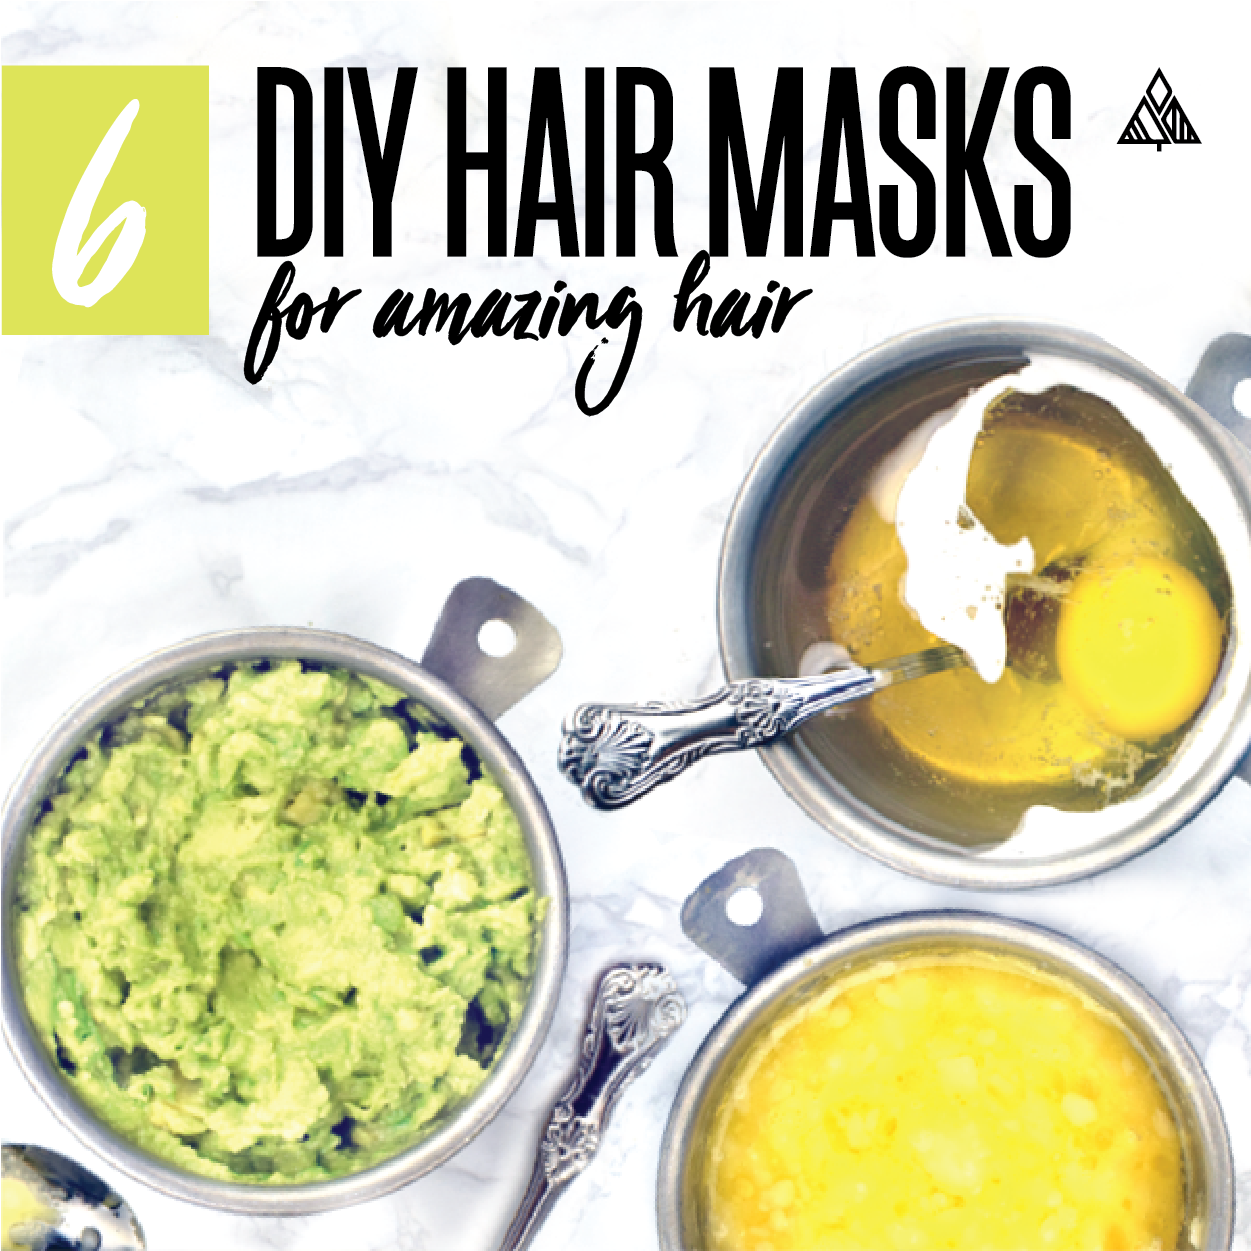 6 DIY Hair Masks